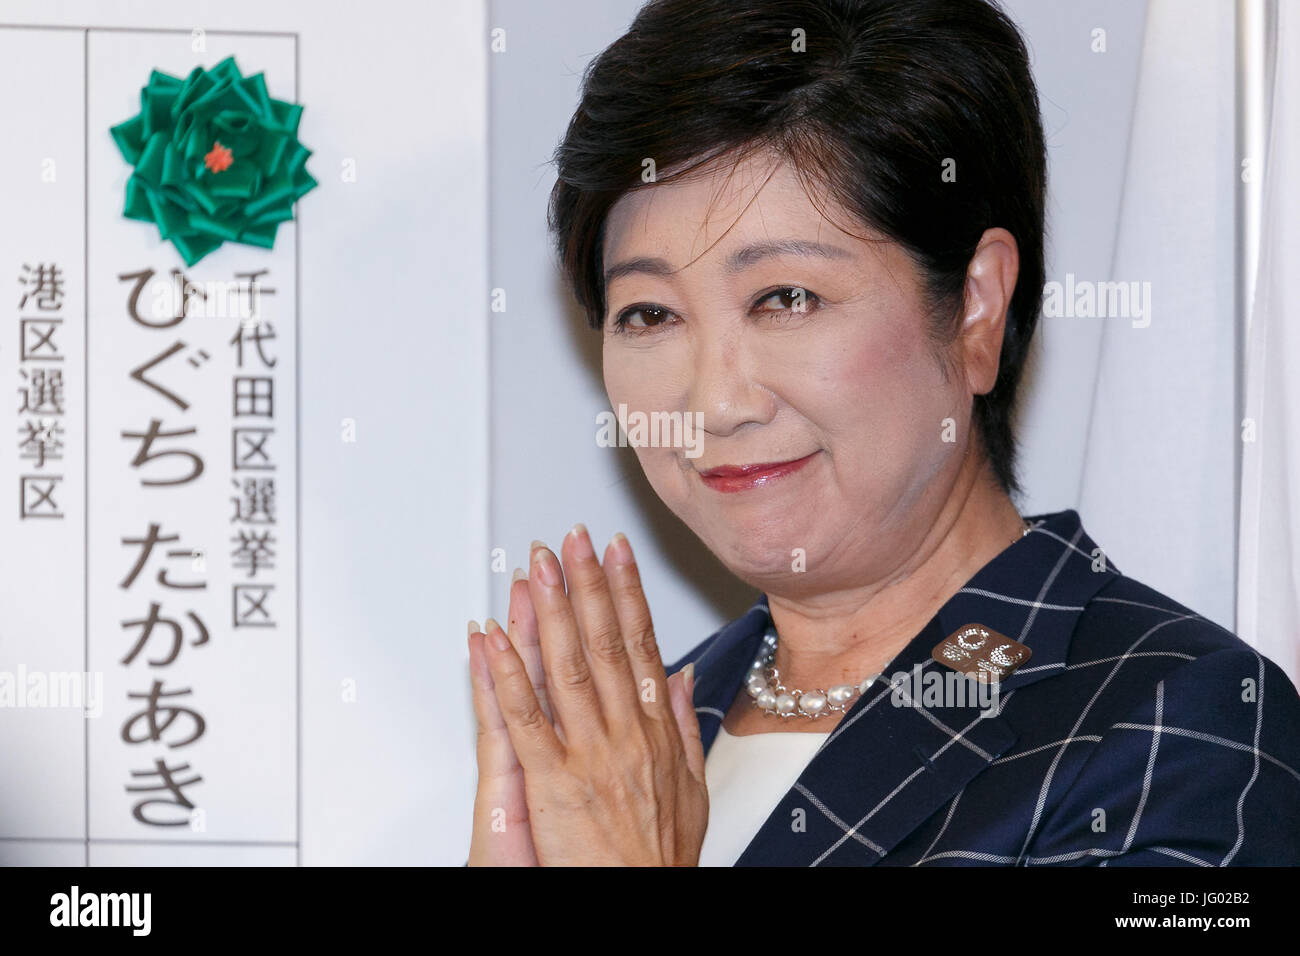 Tokyo, Japan. 2nd July, 2017. Tokyo Governor Yuriko Koike poses for cameras whilst tallying her party's victories - Stock Image